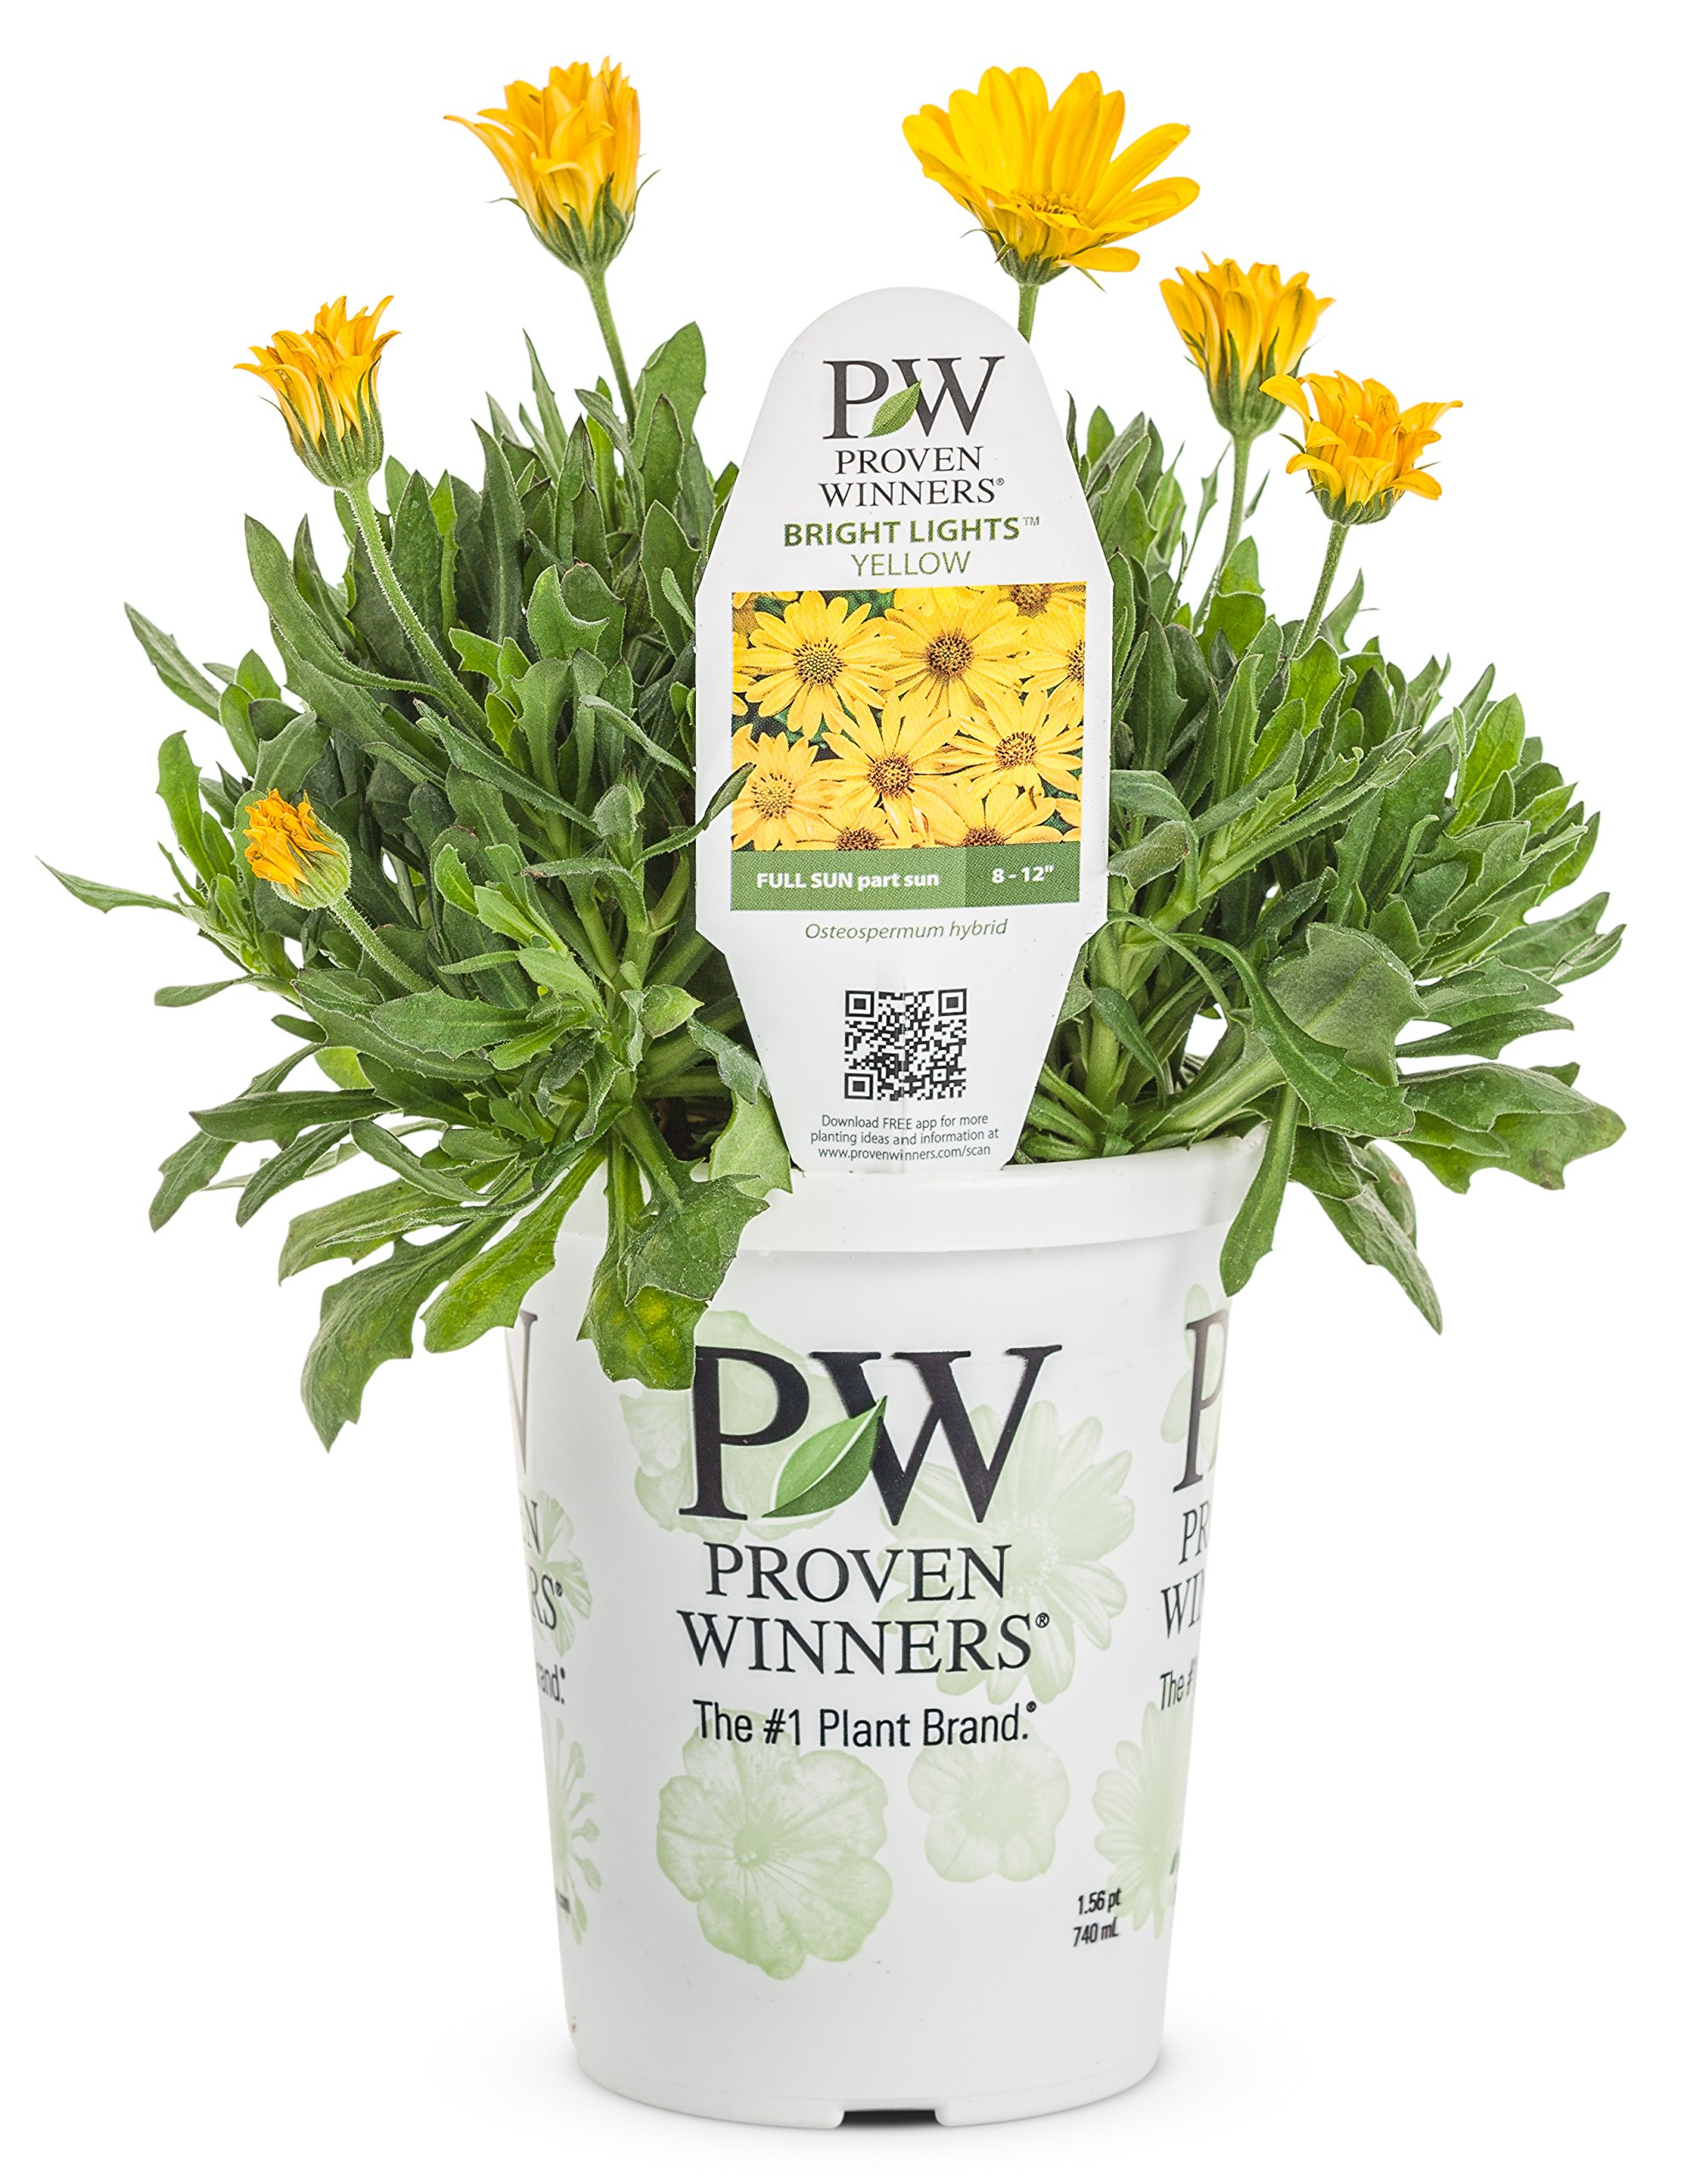 Bright Lights Yellow AfricanDaisy(Osteospermum) Live Plant, Yellow Flowers, 4.25 in. Grande, 4-pack